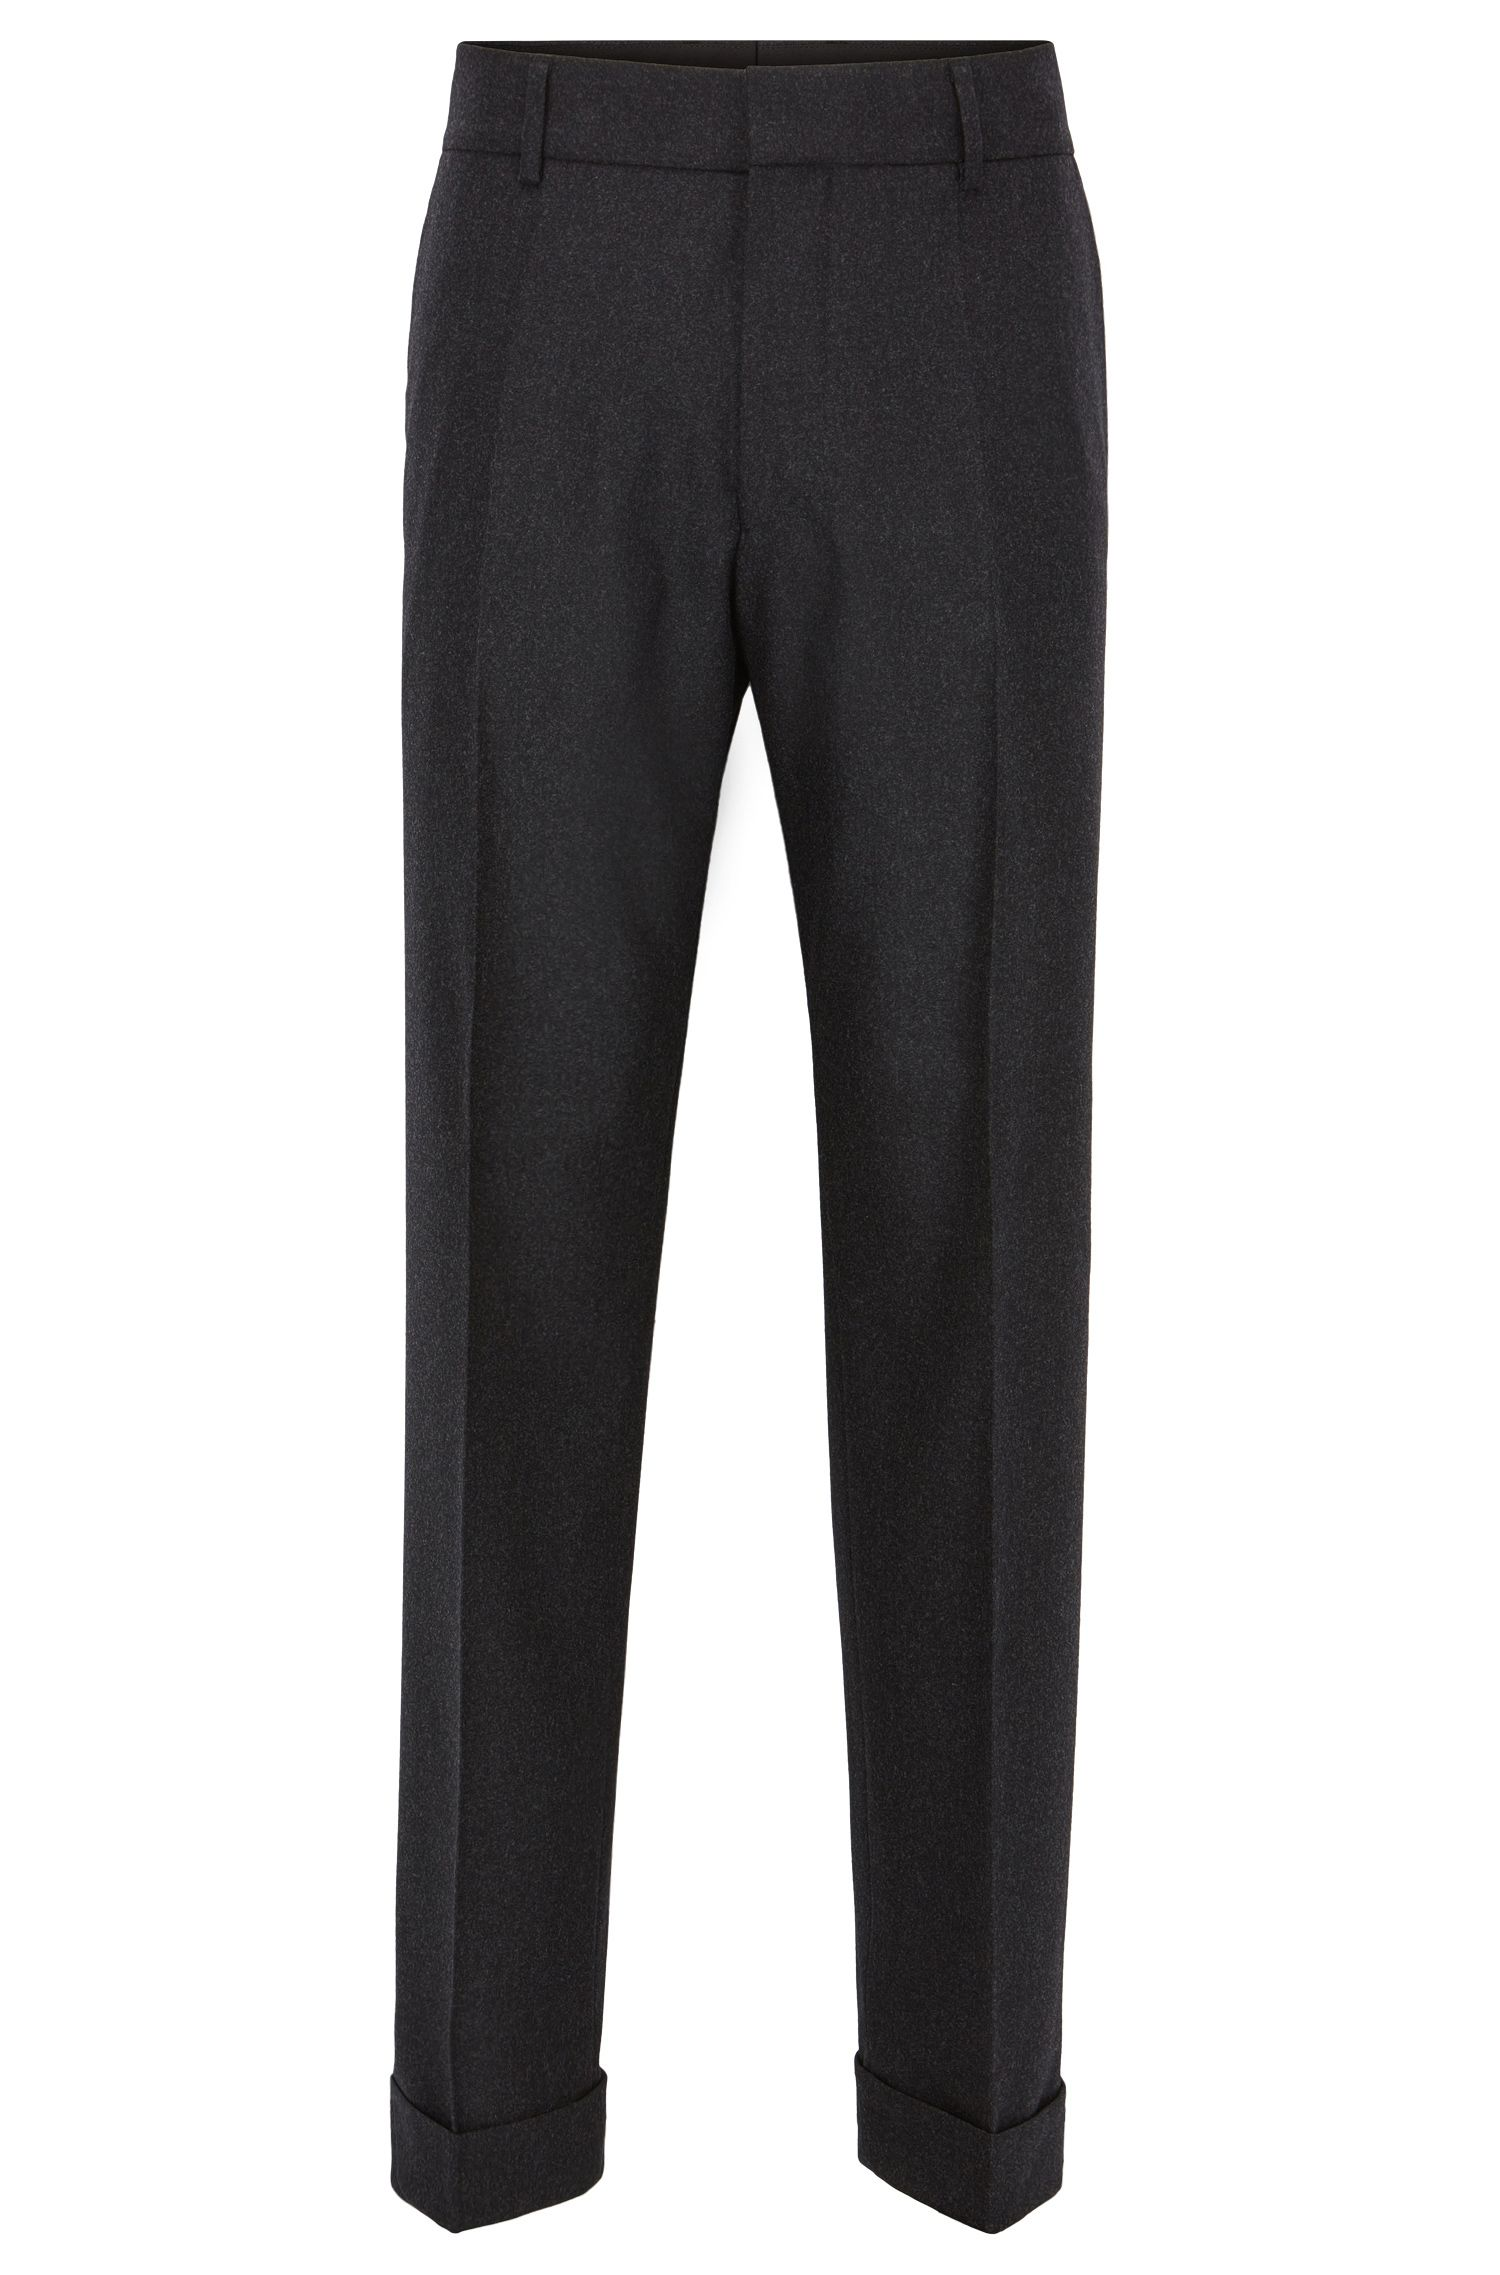 Oversized-fit cuffed trousers in a stretch wool blend